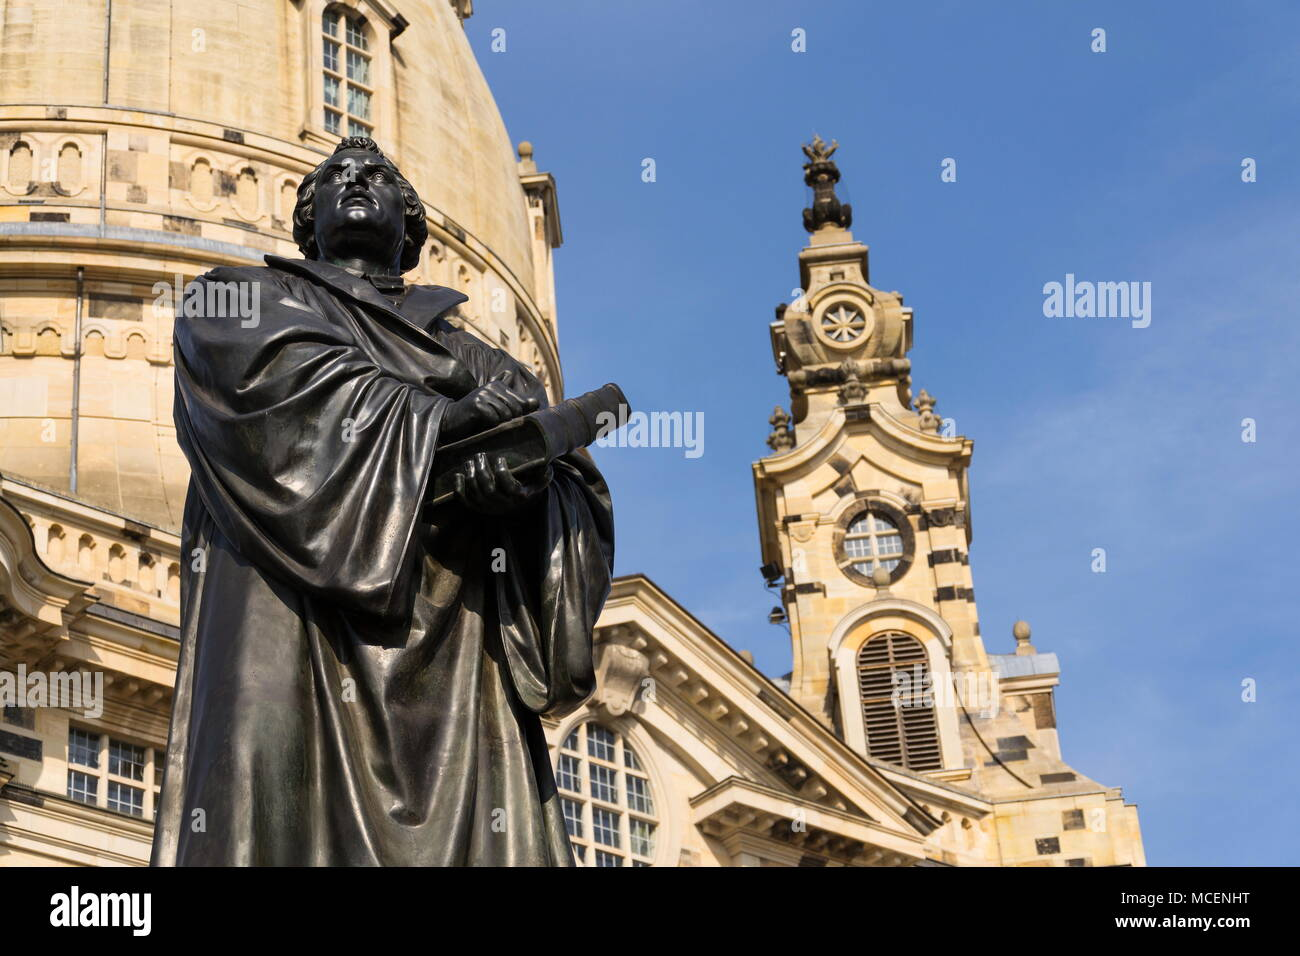 Statue of Martin Luther in front of Frauenkirche, Dresden, Germany Stock Photo